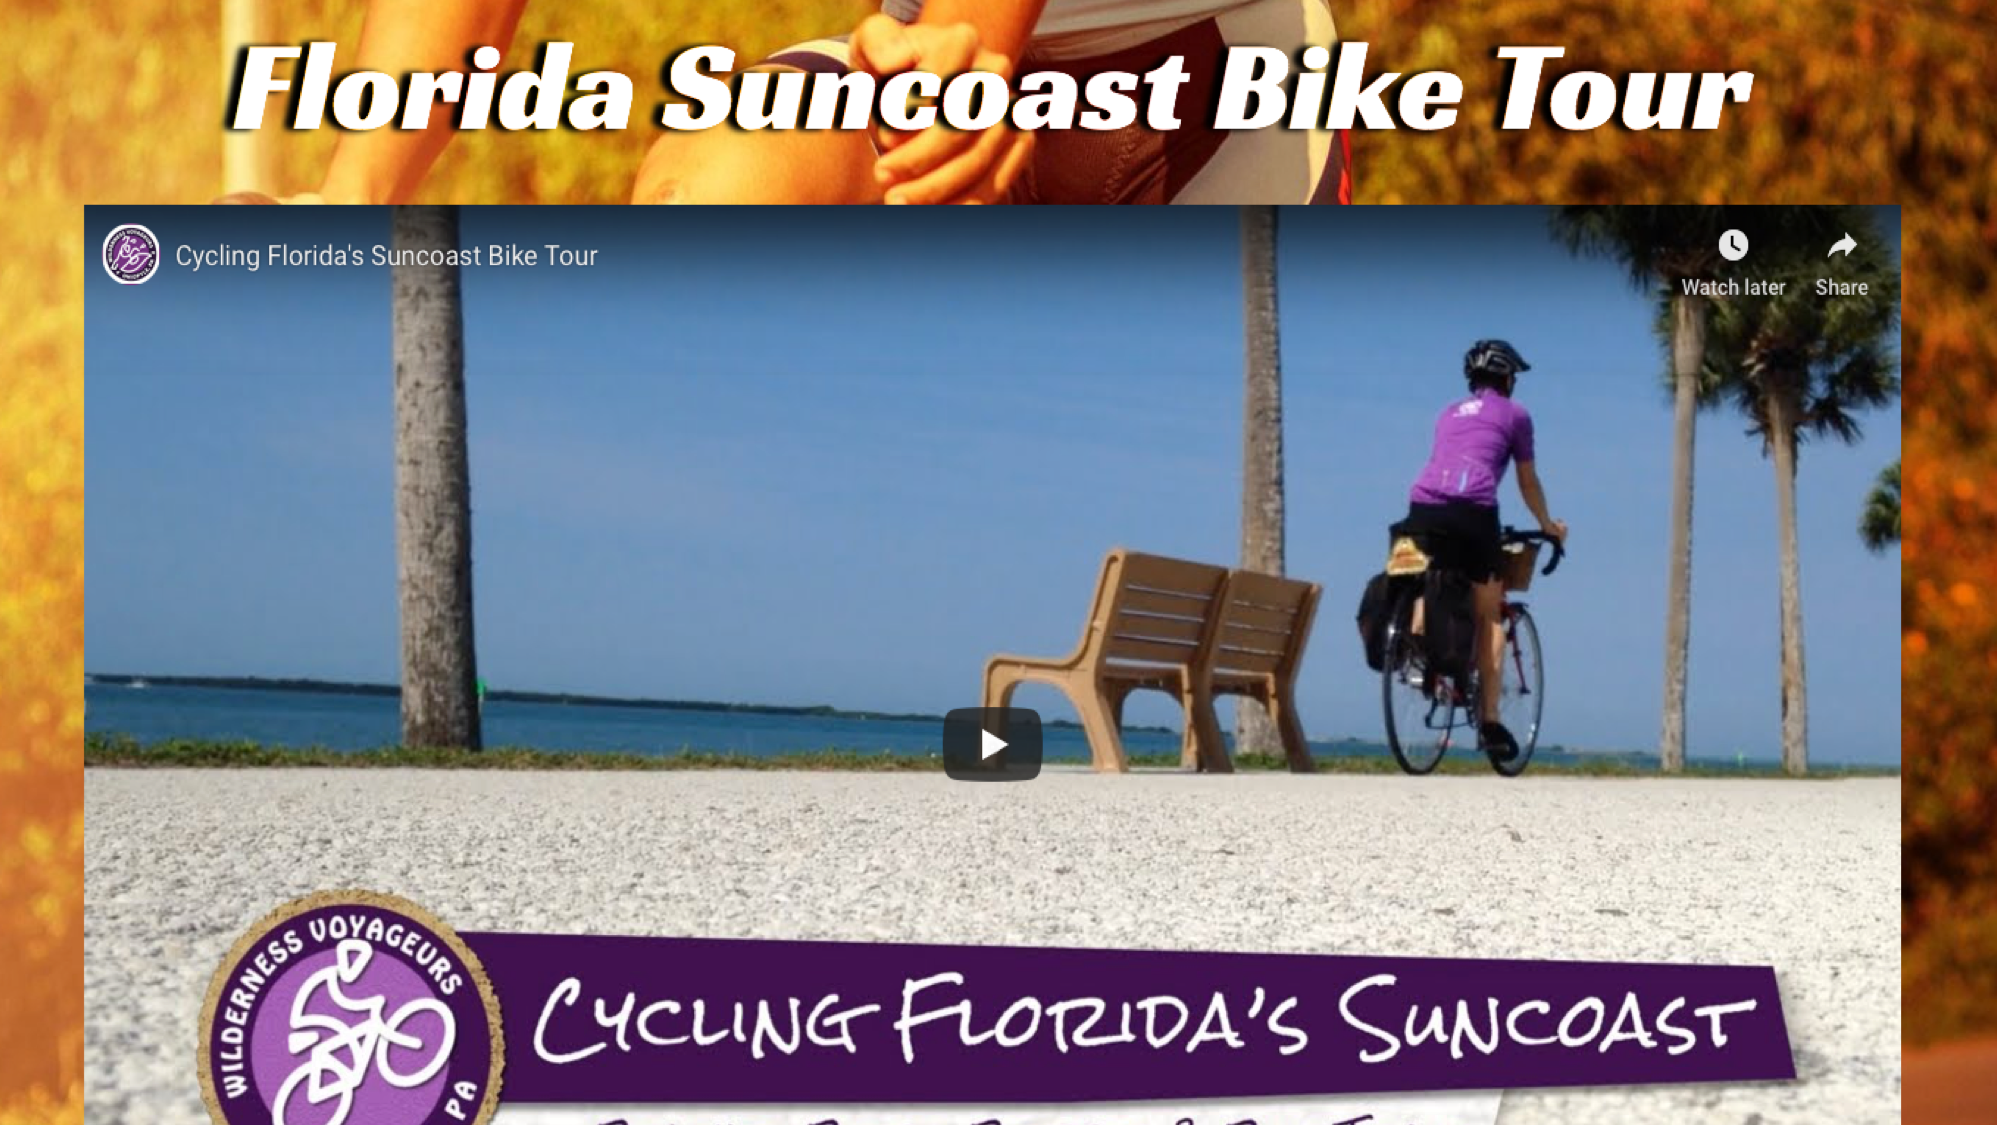 florida suncoast bike tour